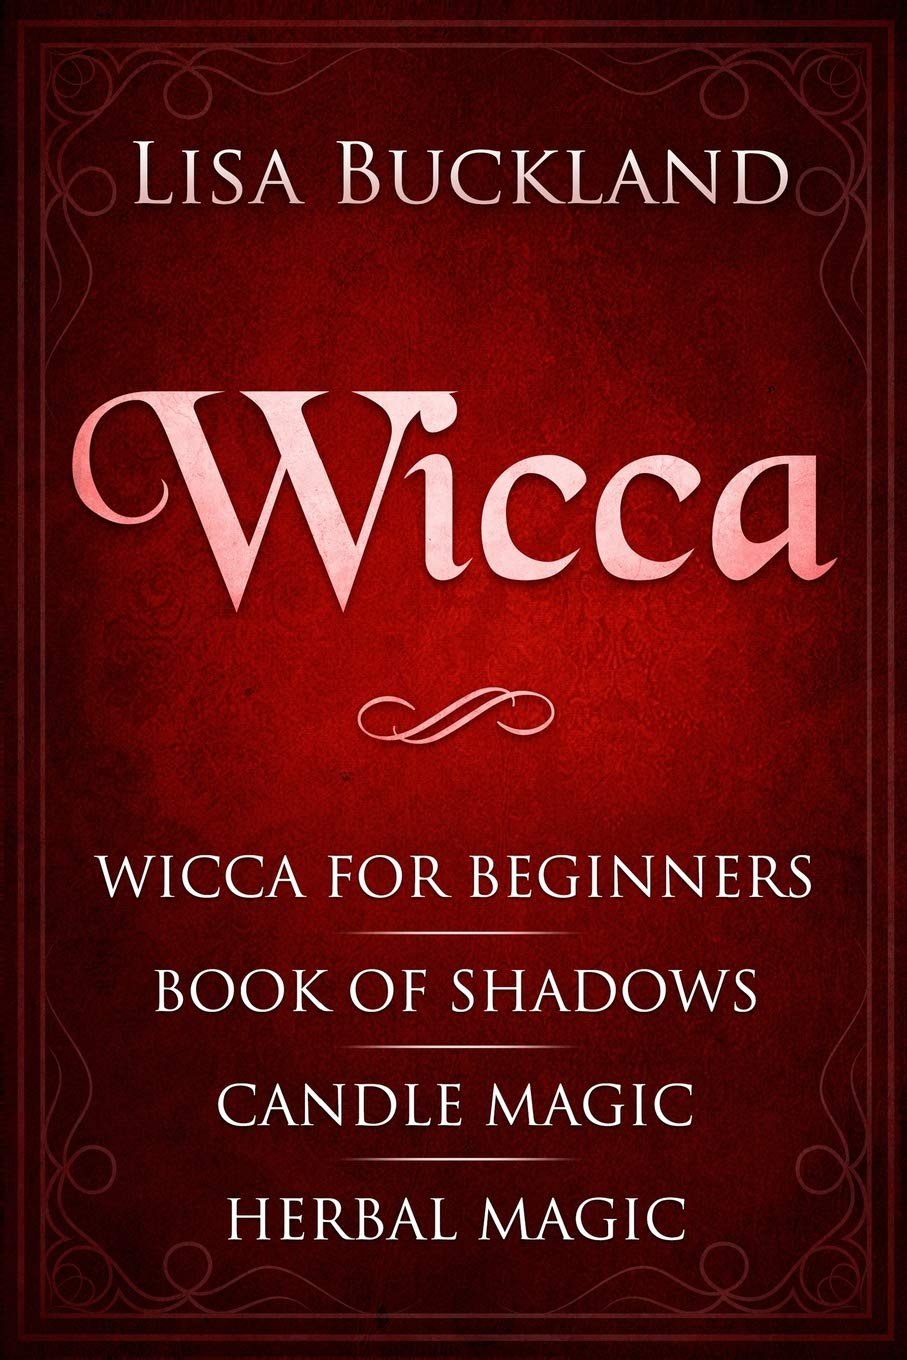 Wicca: Wicca for Beginners, Book of Shadows, Candle Magic